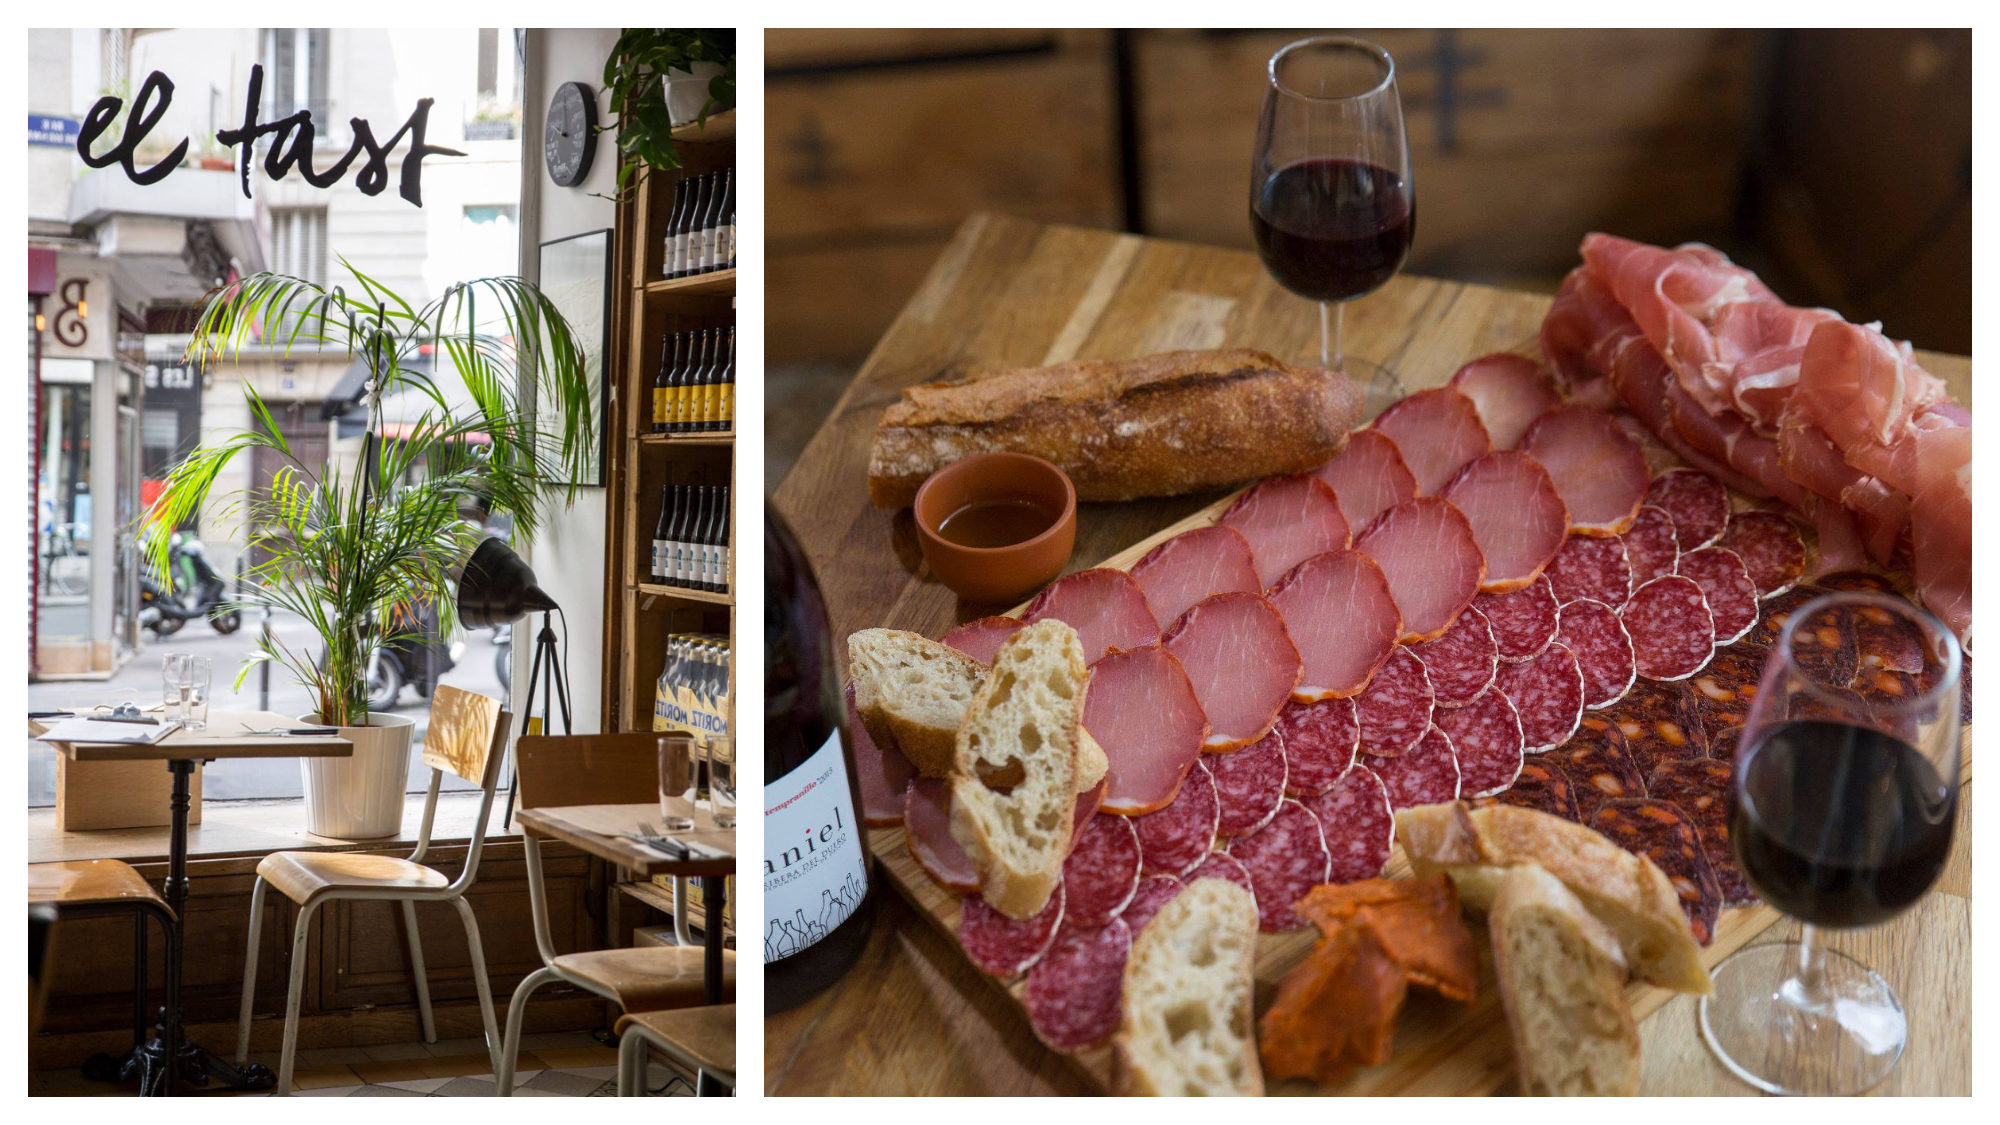 The wooden tables and chairs at El Tast restaurant in Paris (left) and a ham board with crusty baguette and red wine at El Tast (right).